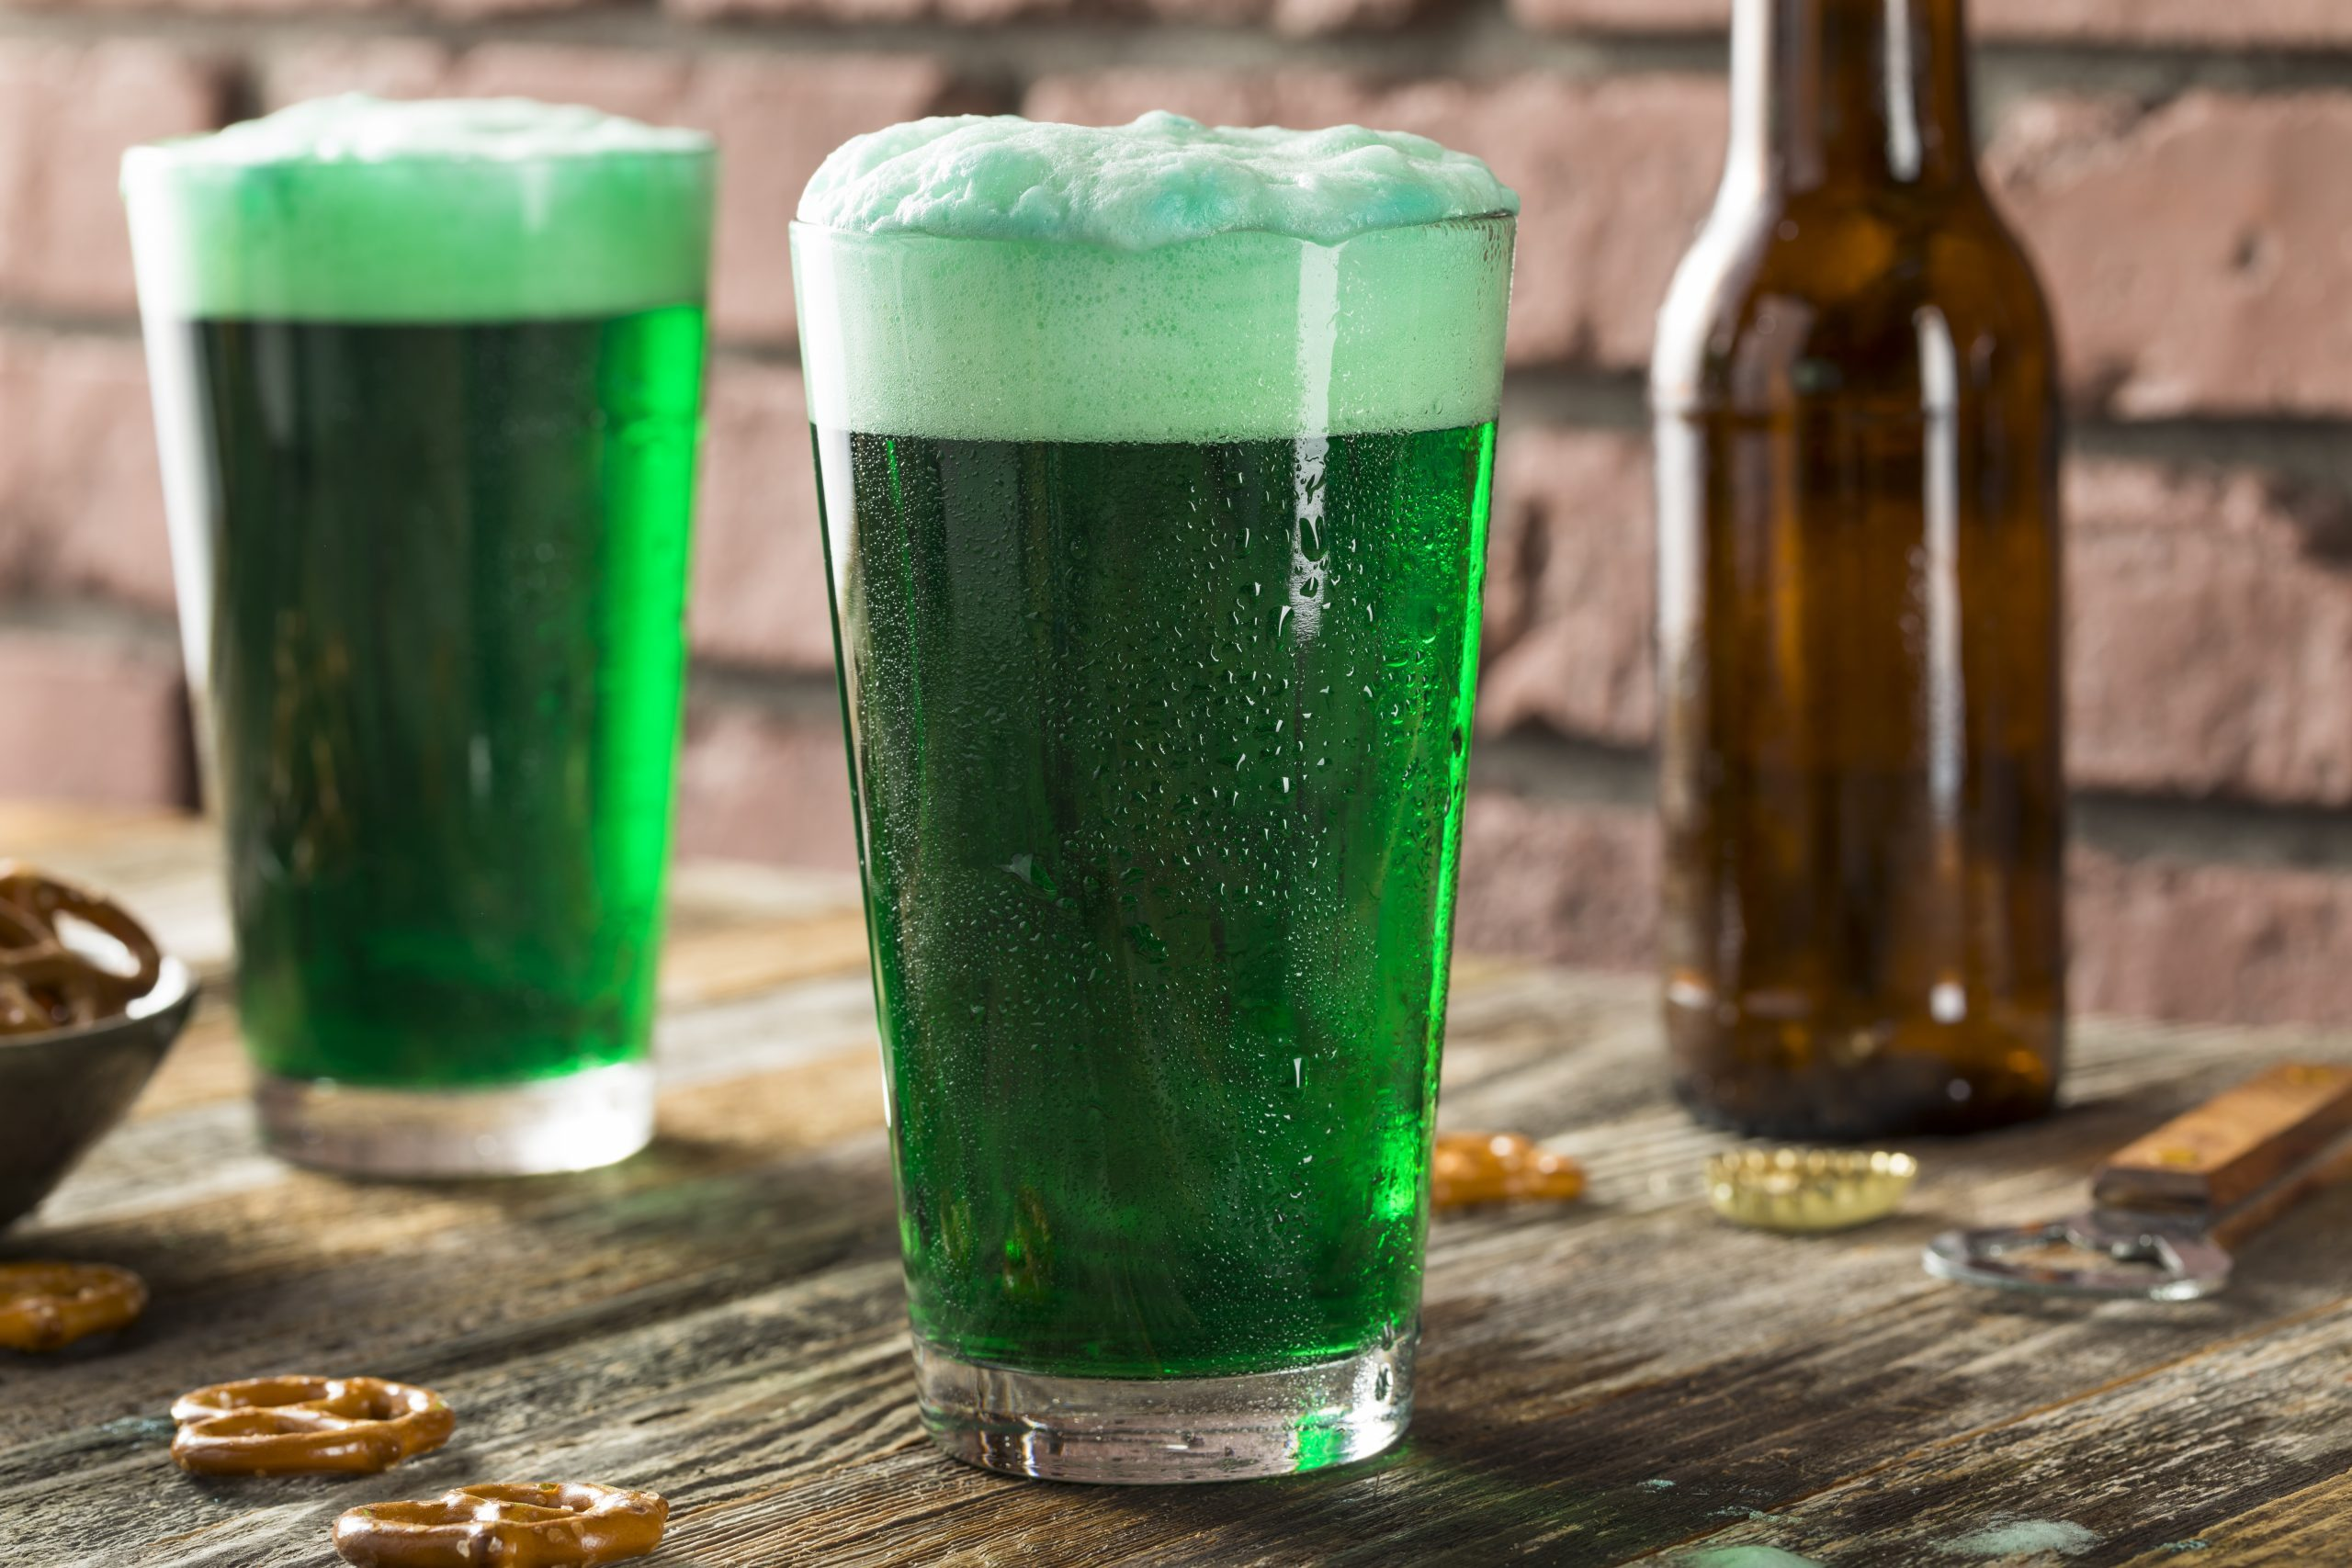 Refreshing Festive Green Beer For St. Patricks Day. fun facts.